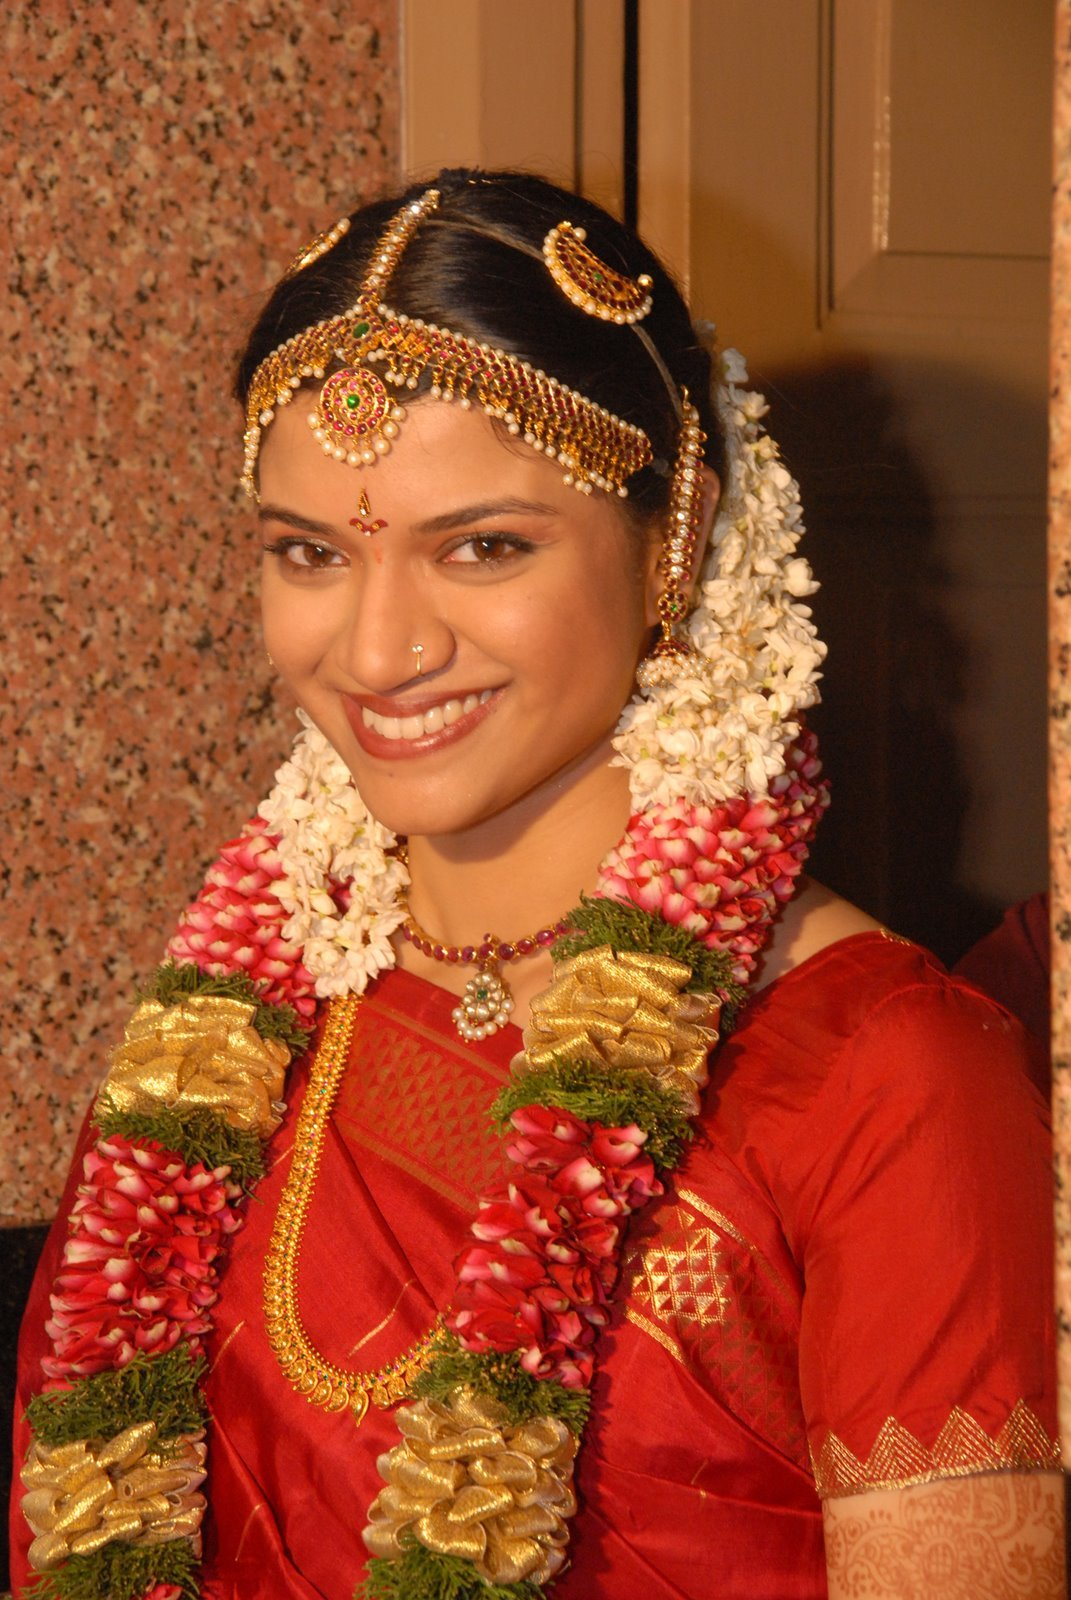 The Best Fashion World South Indian Bridal Hair Style Part 5 Pictures